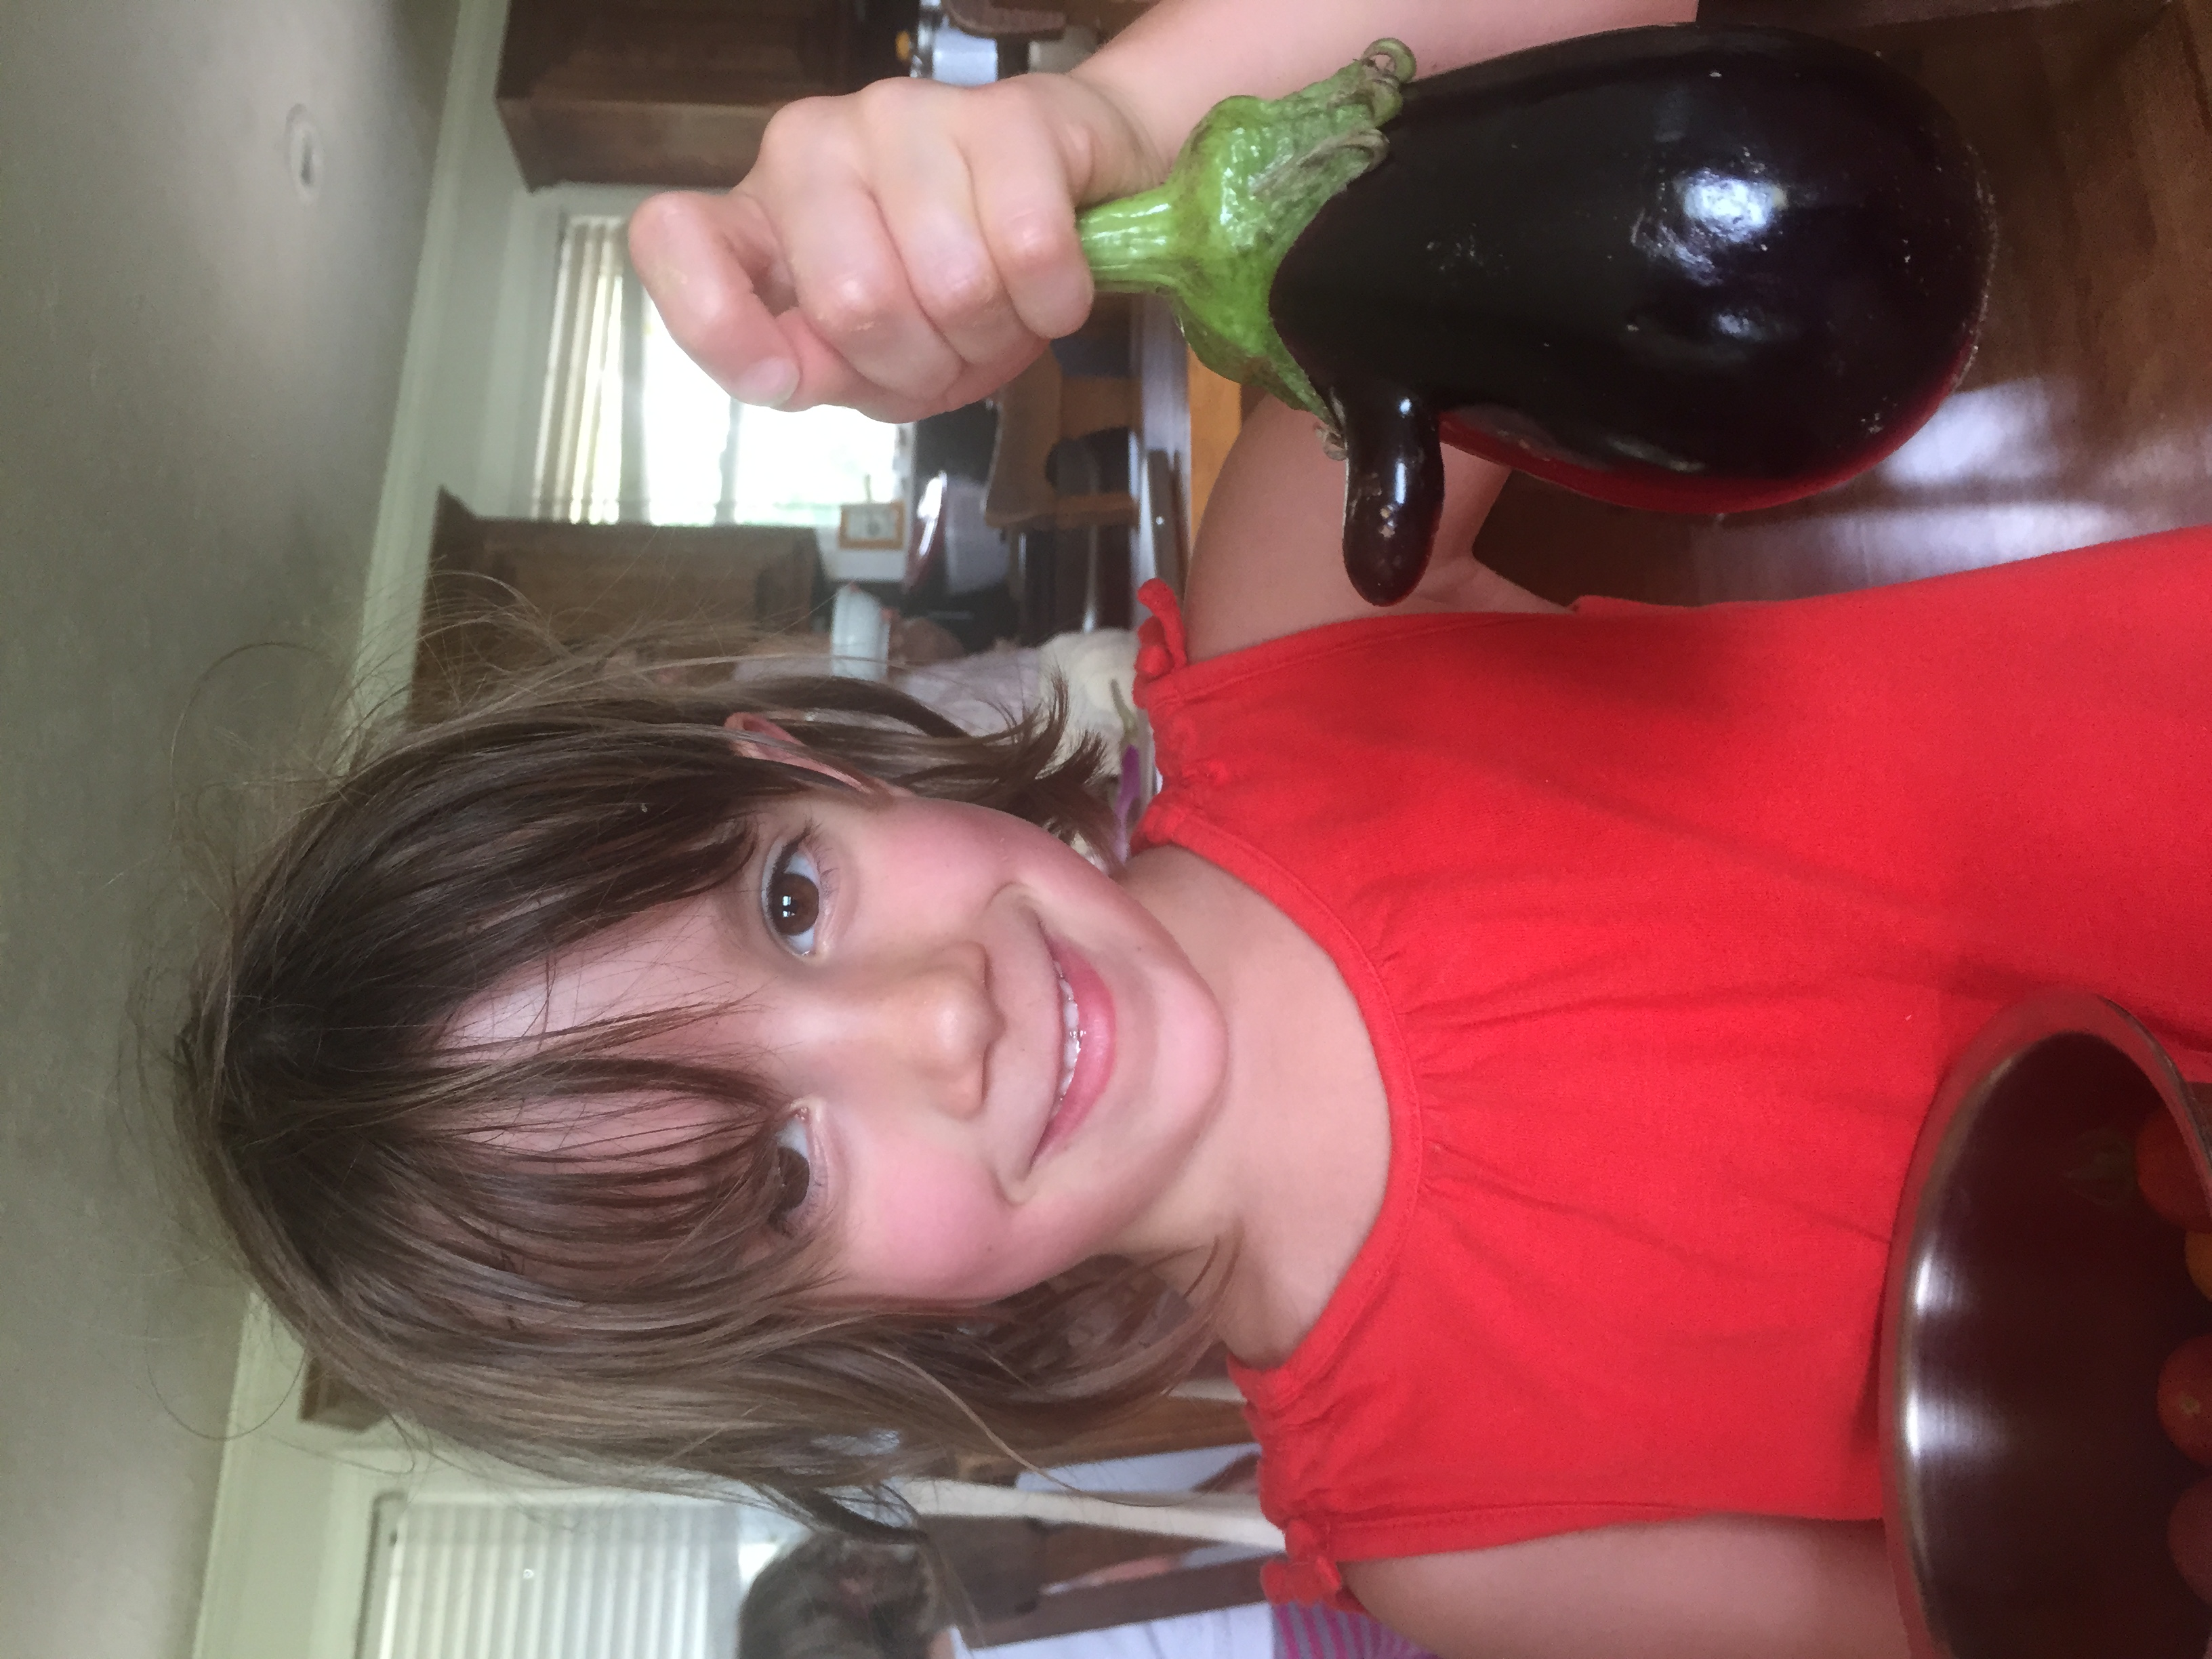 Lottie and other family members joined us for a Monday Father's Day Celebration/Family Work Party. Her eggplant has a nose! #best in-laws ever